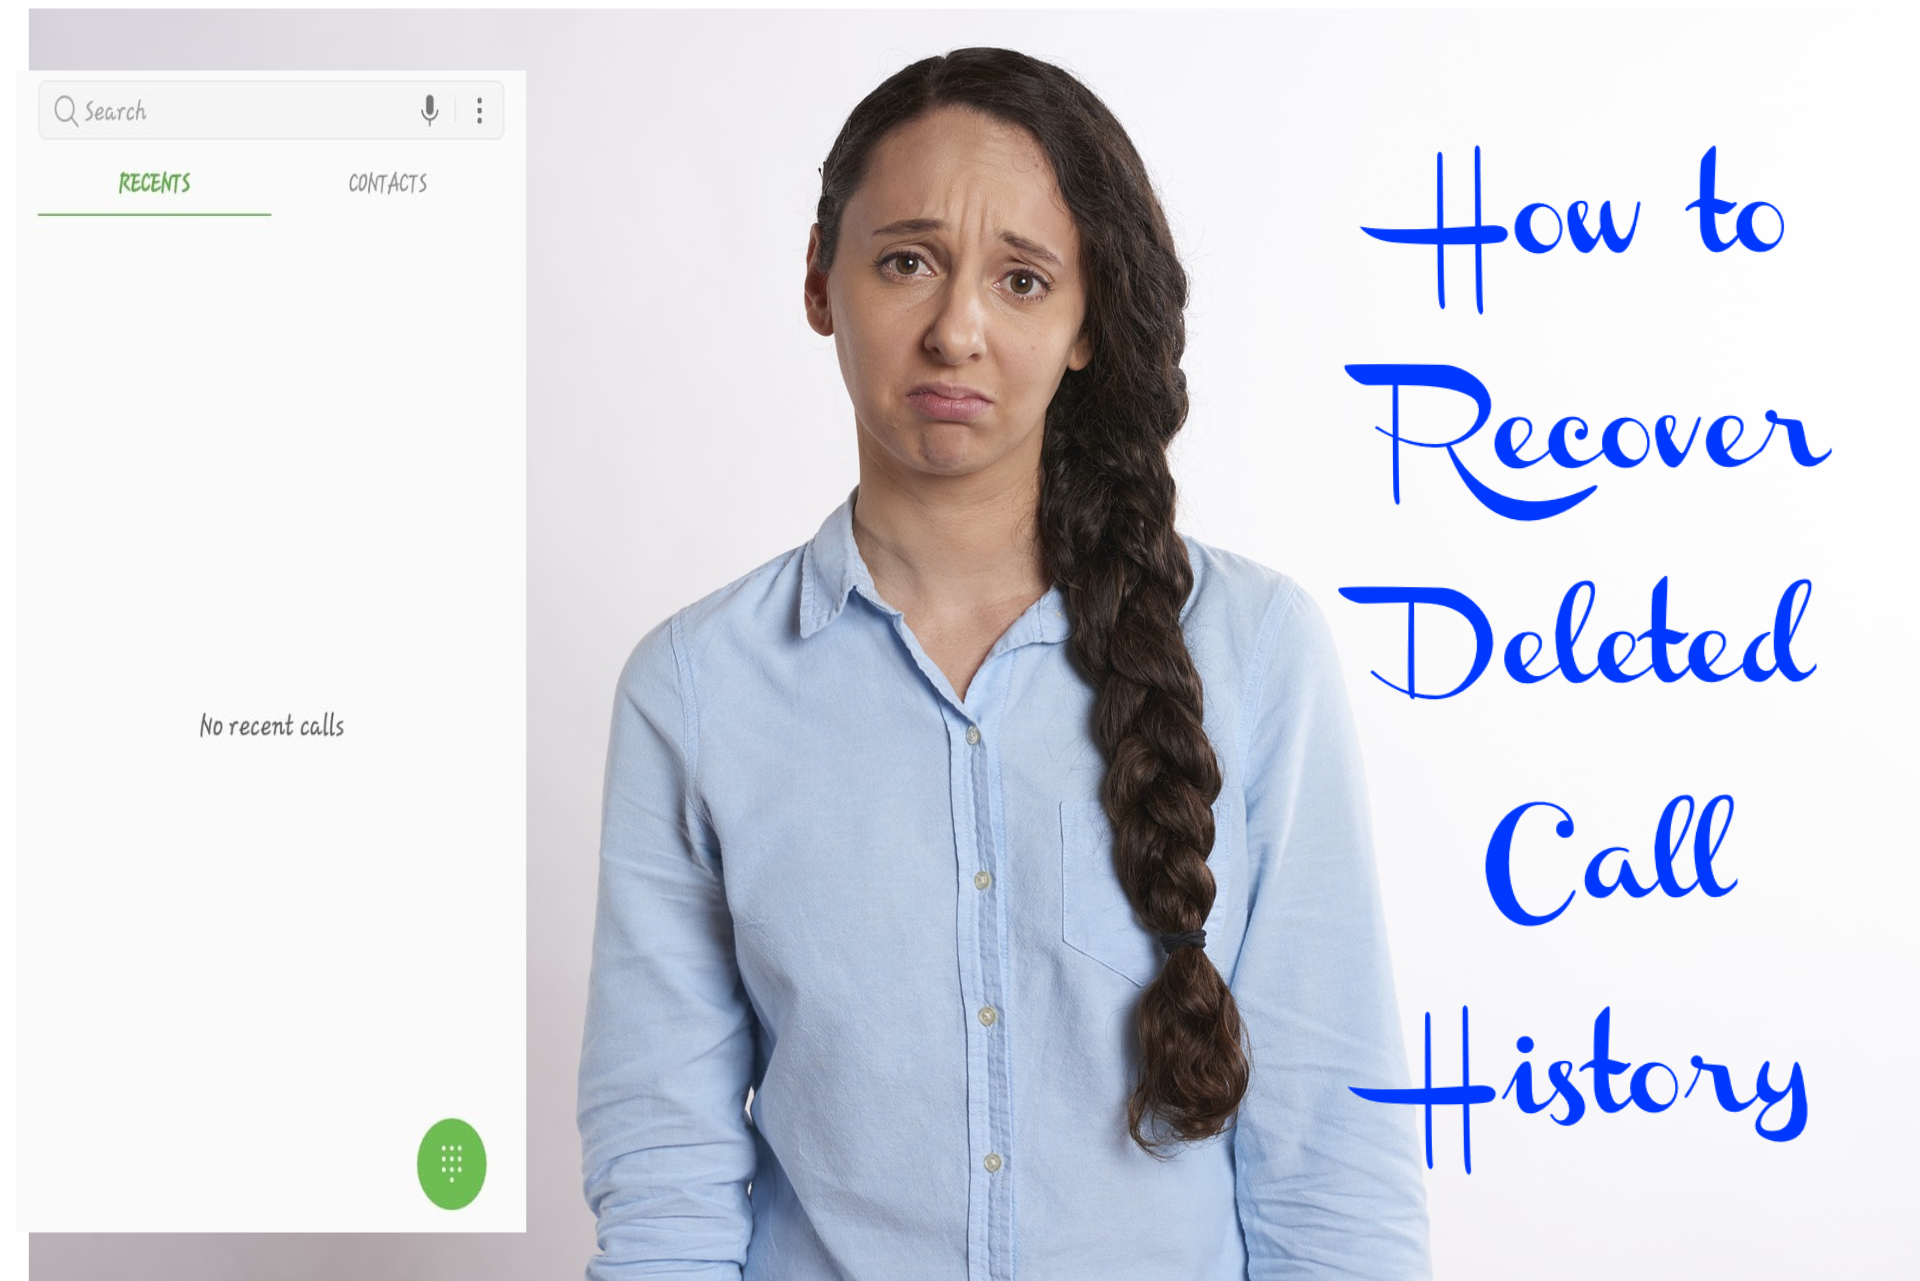 How to Recover Deleted Call History